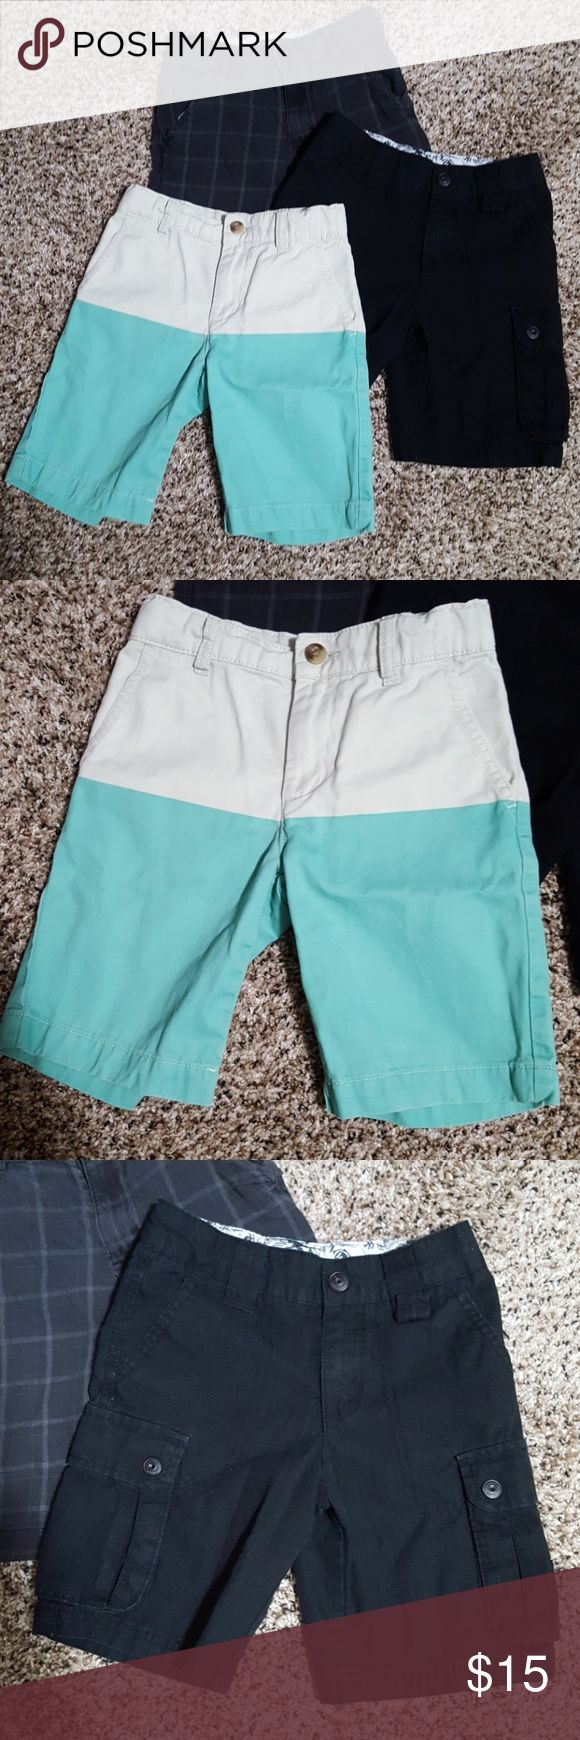 Boy's shorts size 6 Three pair of boy shorts solid black are Shaun White,  tan and mint green are Children's Place,  plaid pair is Tony Hawk .  all have adjustable waist zipper button fly in excellent condition.  smoke-free home Children's Place Bottoms Shorts